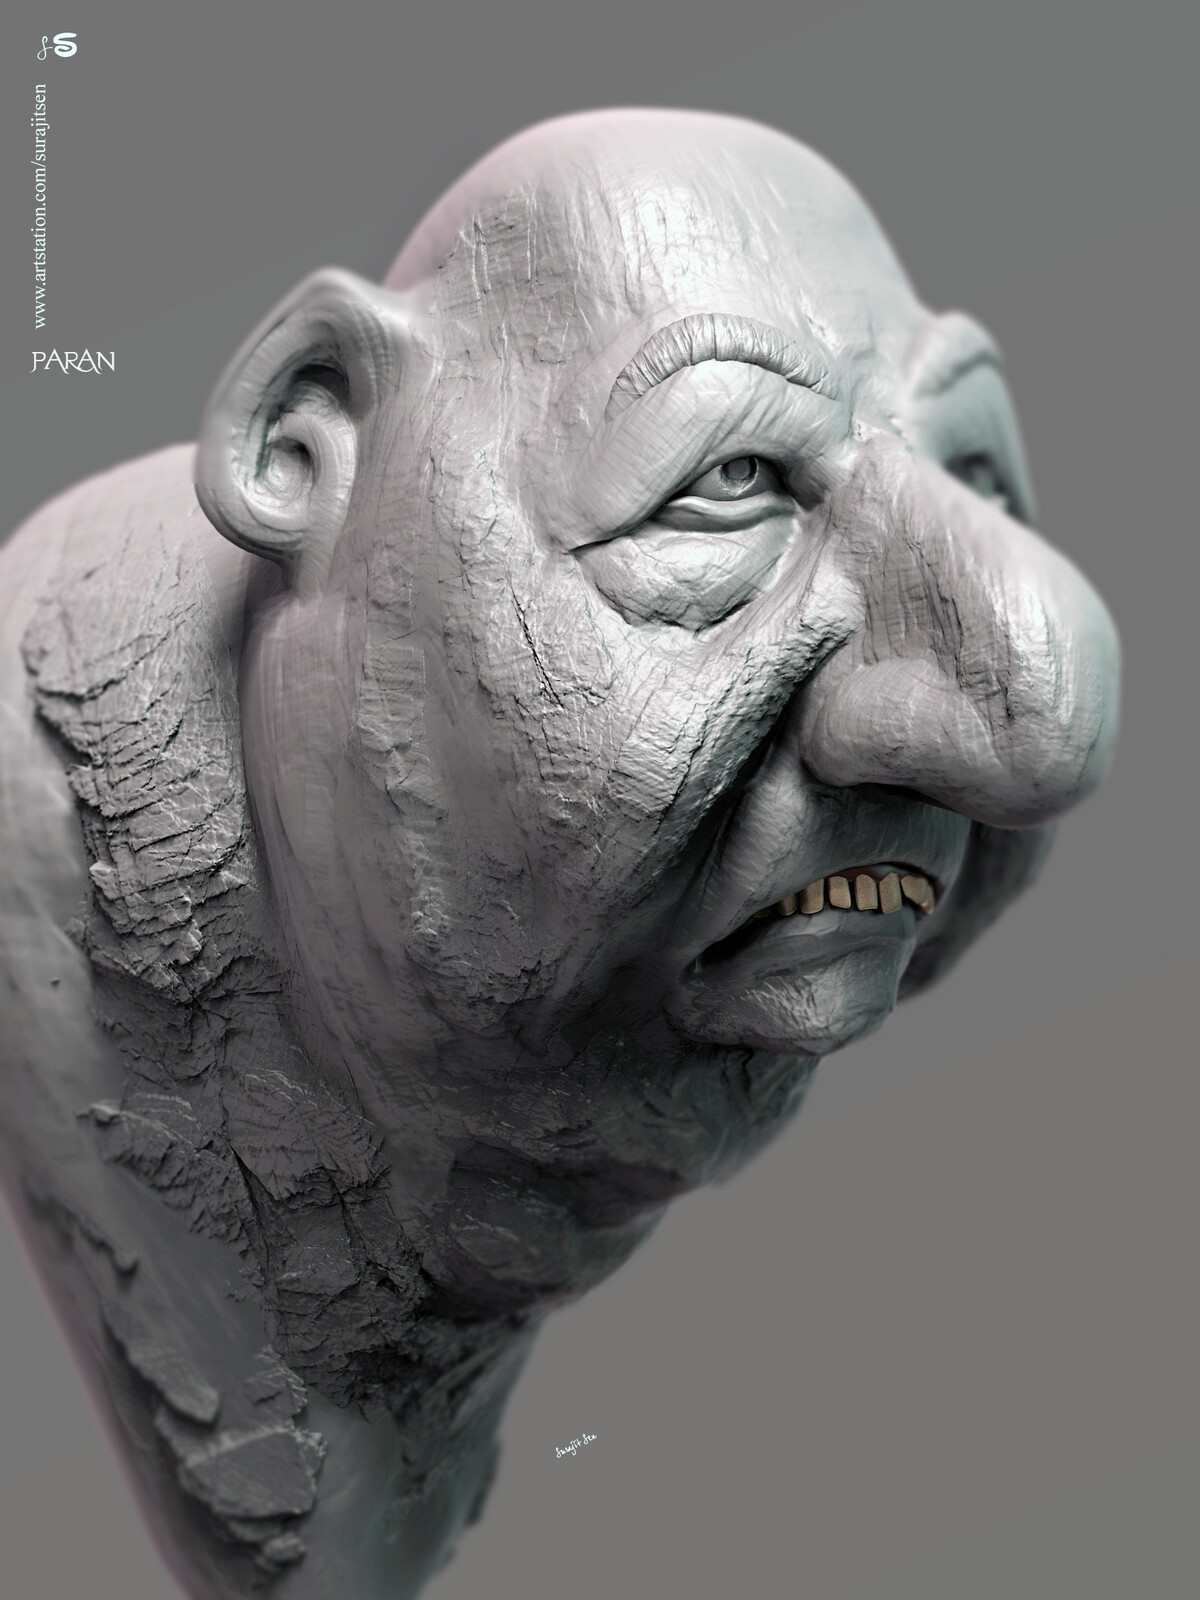 #doodle My free time quick Digital Sculpting study.. Played with brushes. Paran